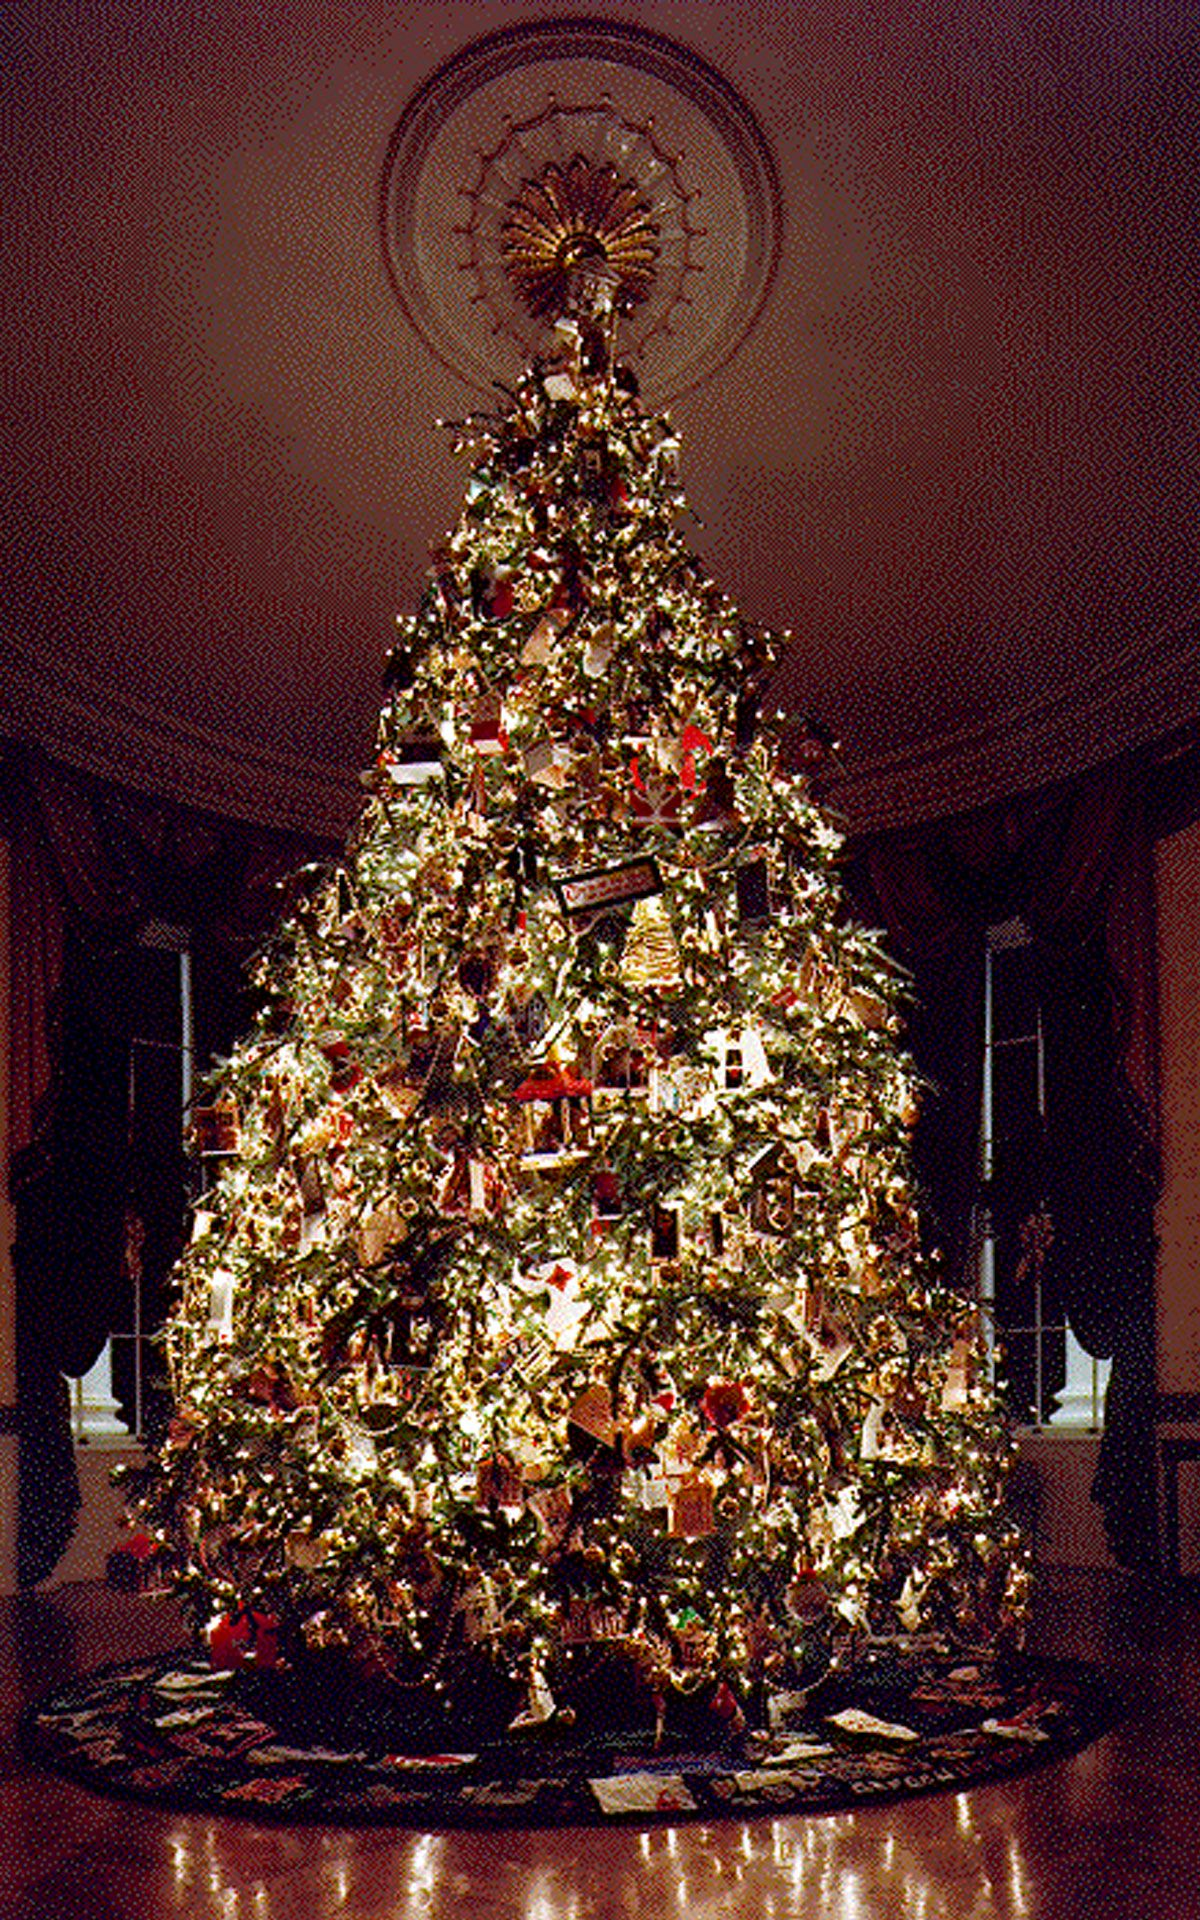 christmas tree decorating ideas 2013 luxury christmas tree decorations ideas real house design background the luxury game